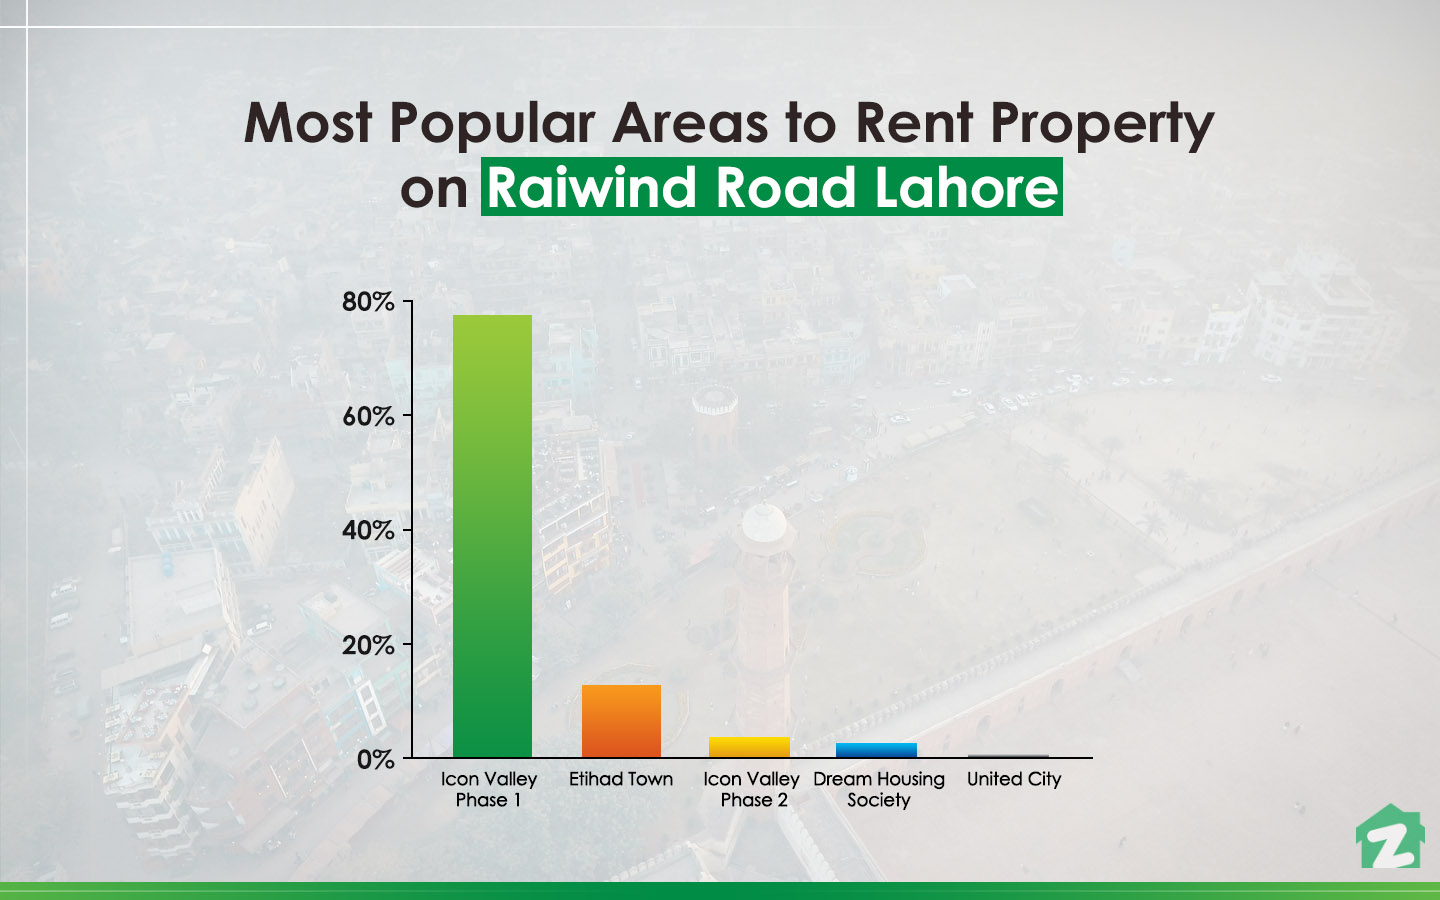 Popular Areas on Raiwind Road Lahore for renting properties